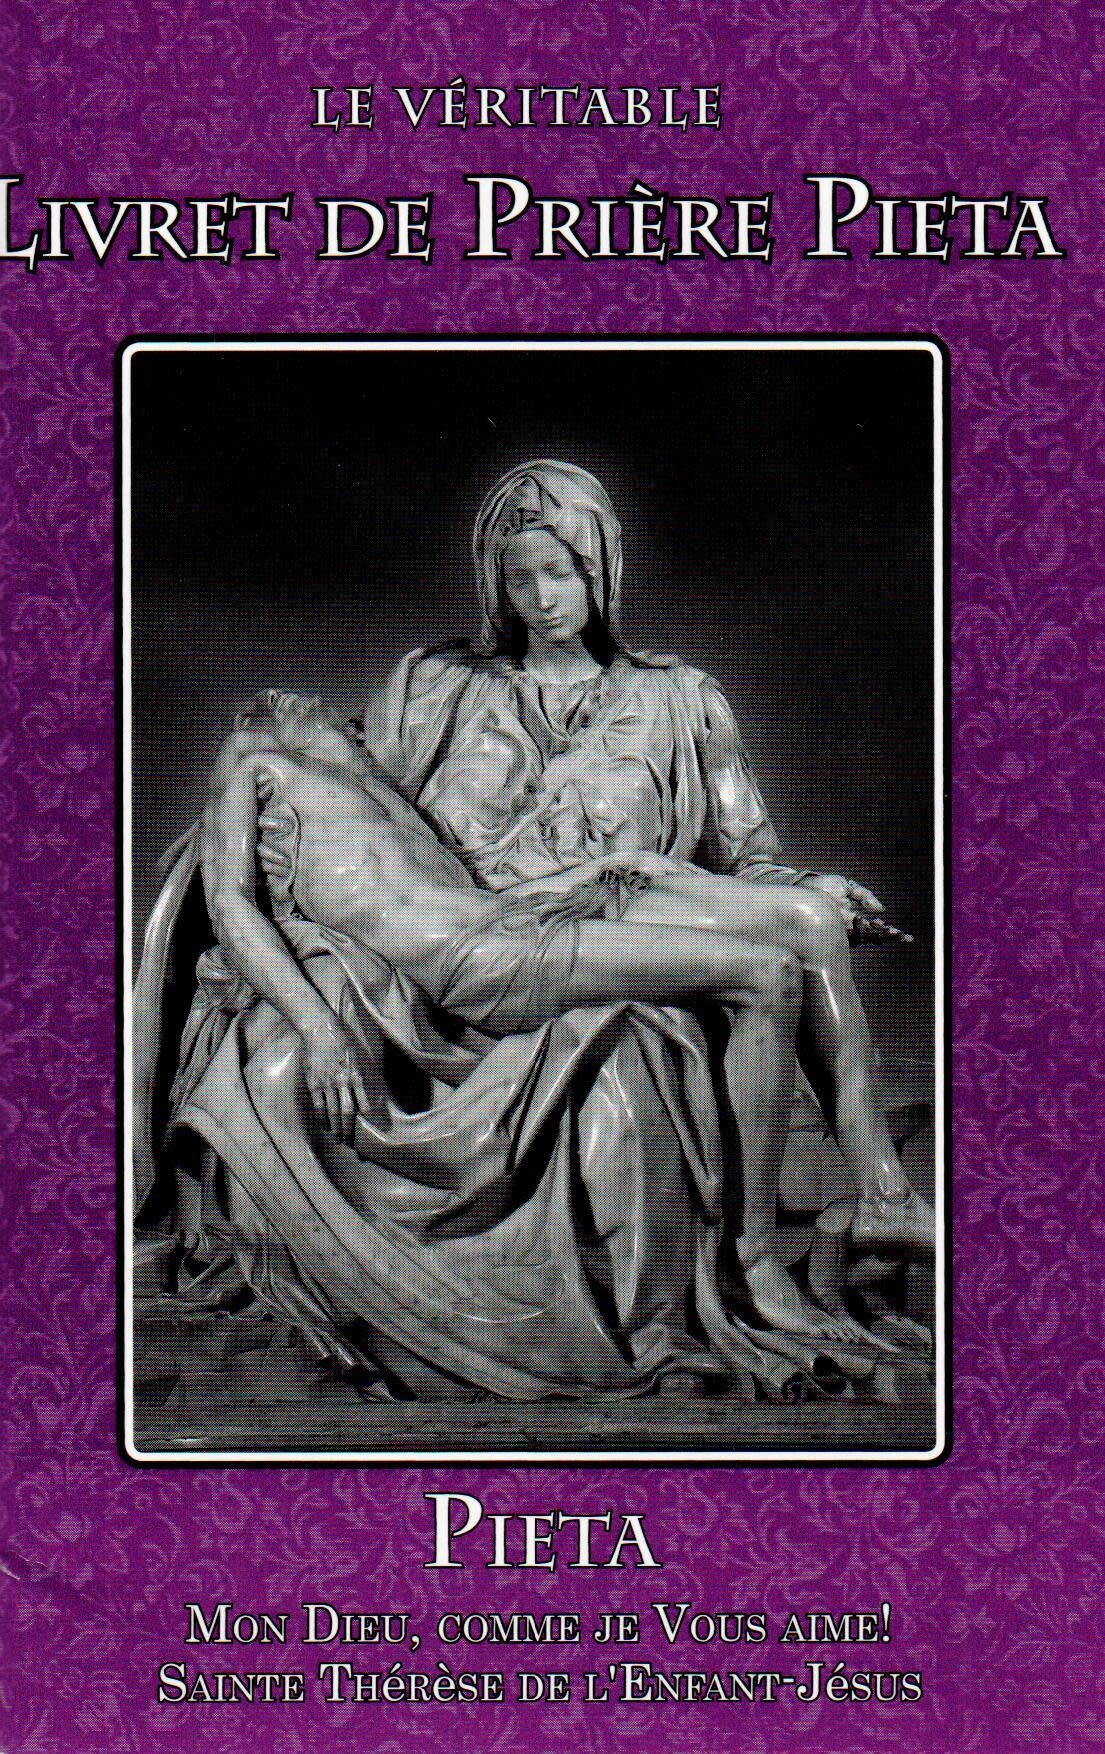 Pieta Booklet (French)